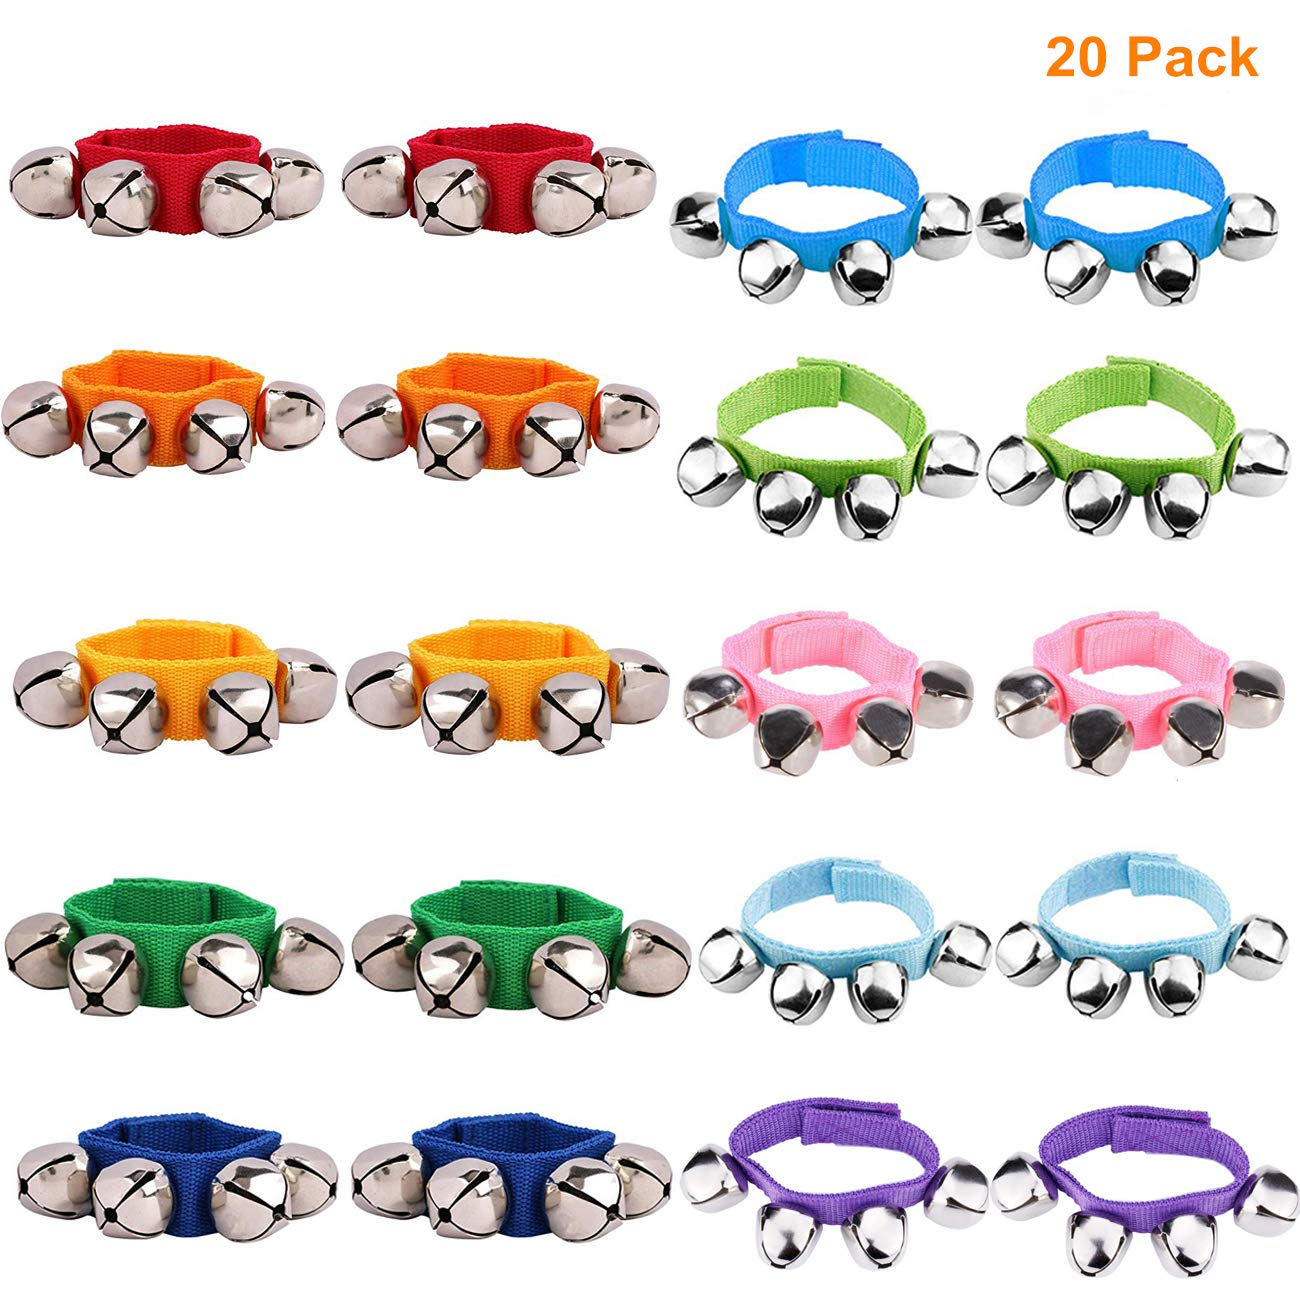 Band Wrist Bells for Kids Wrist Band Jingle Bells Musical Rhythm Toys 10 Colors Children's Musical Instruments for School 20 Pack